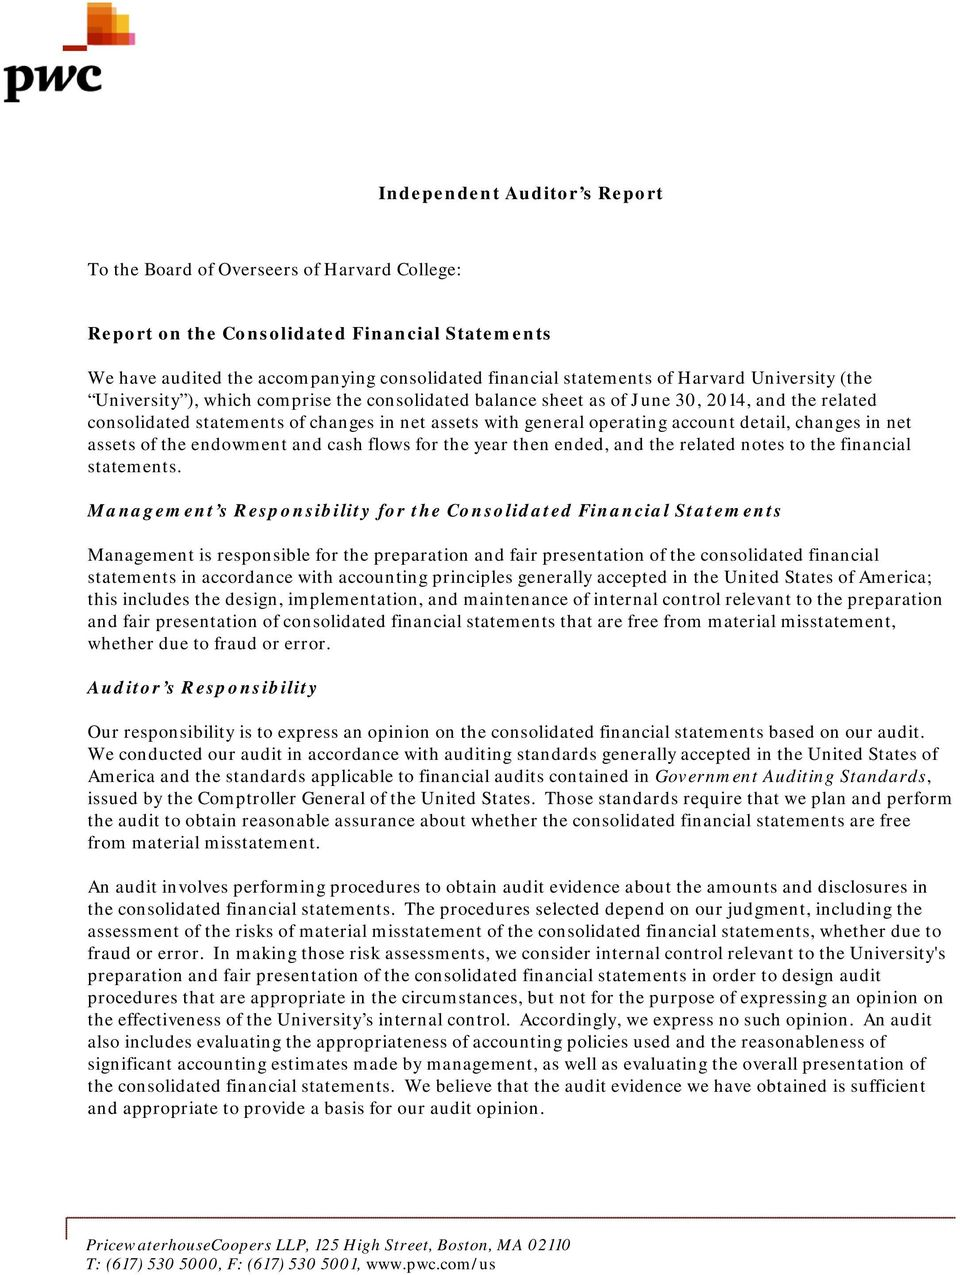 account detail, changes in net assets of the endowment and cash flows for the year then ended, and the related notes to the financial statements.